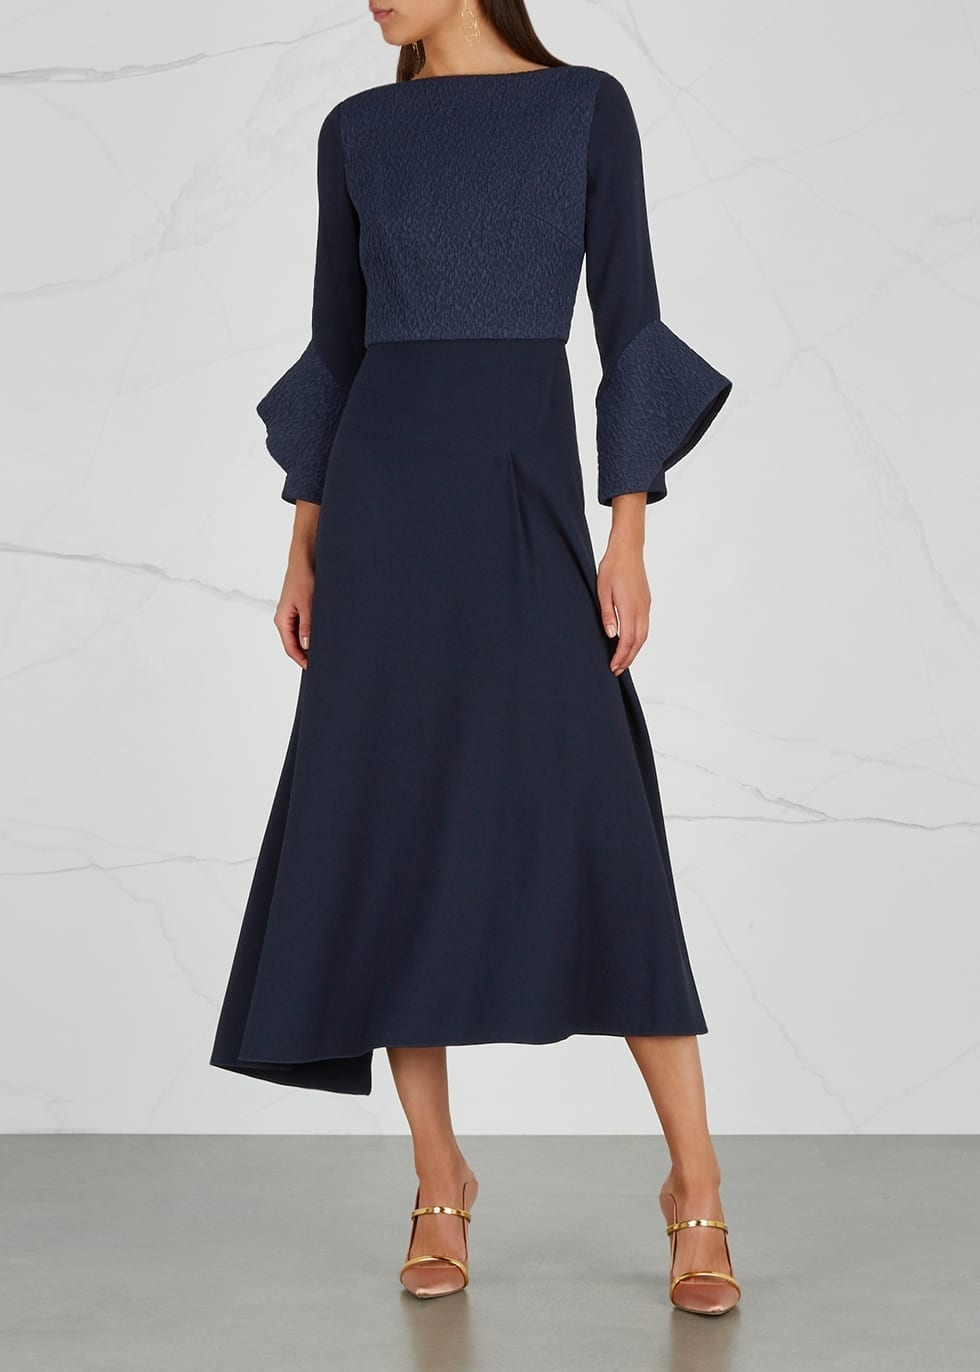 ROLAND MOURET Hemming Textured-panelled Navy Dress